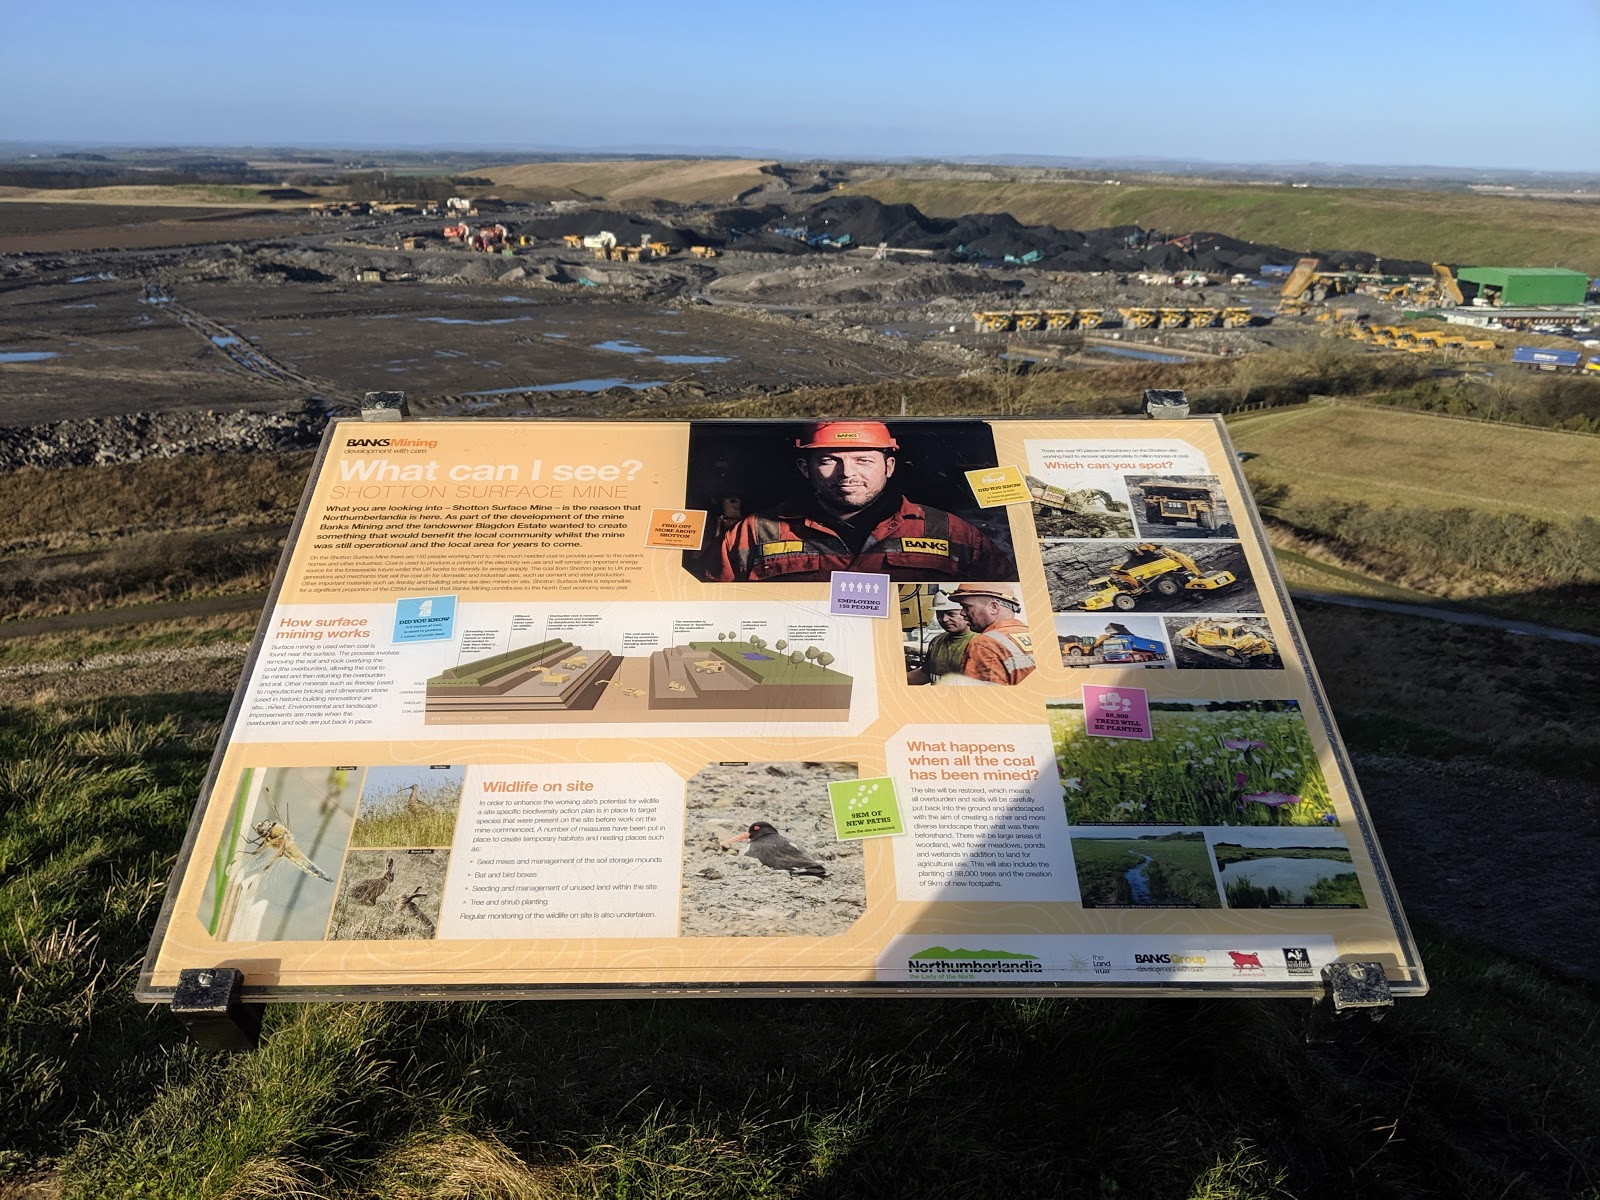 A Guide to Visiting Northumberlandia - shotton surface mine view and information